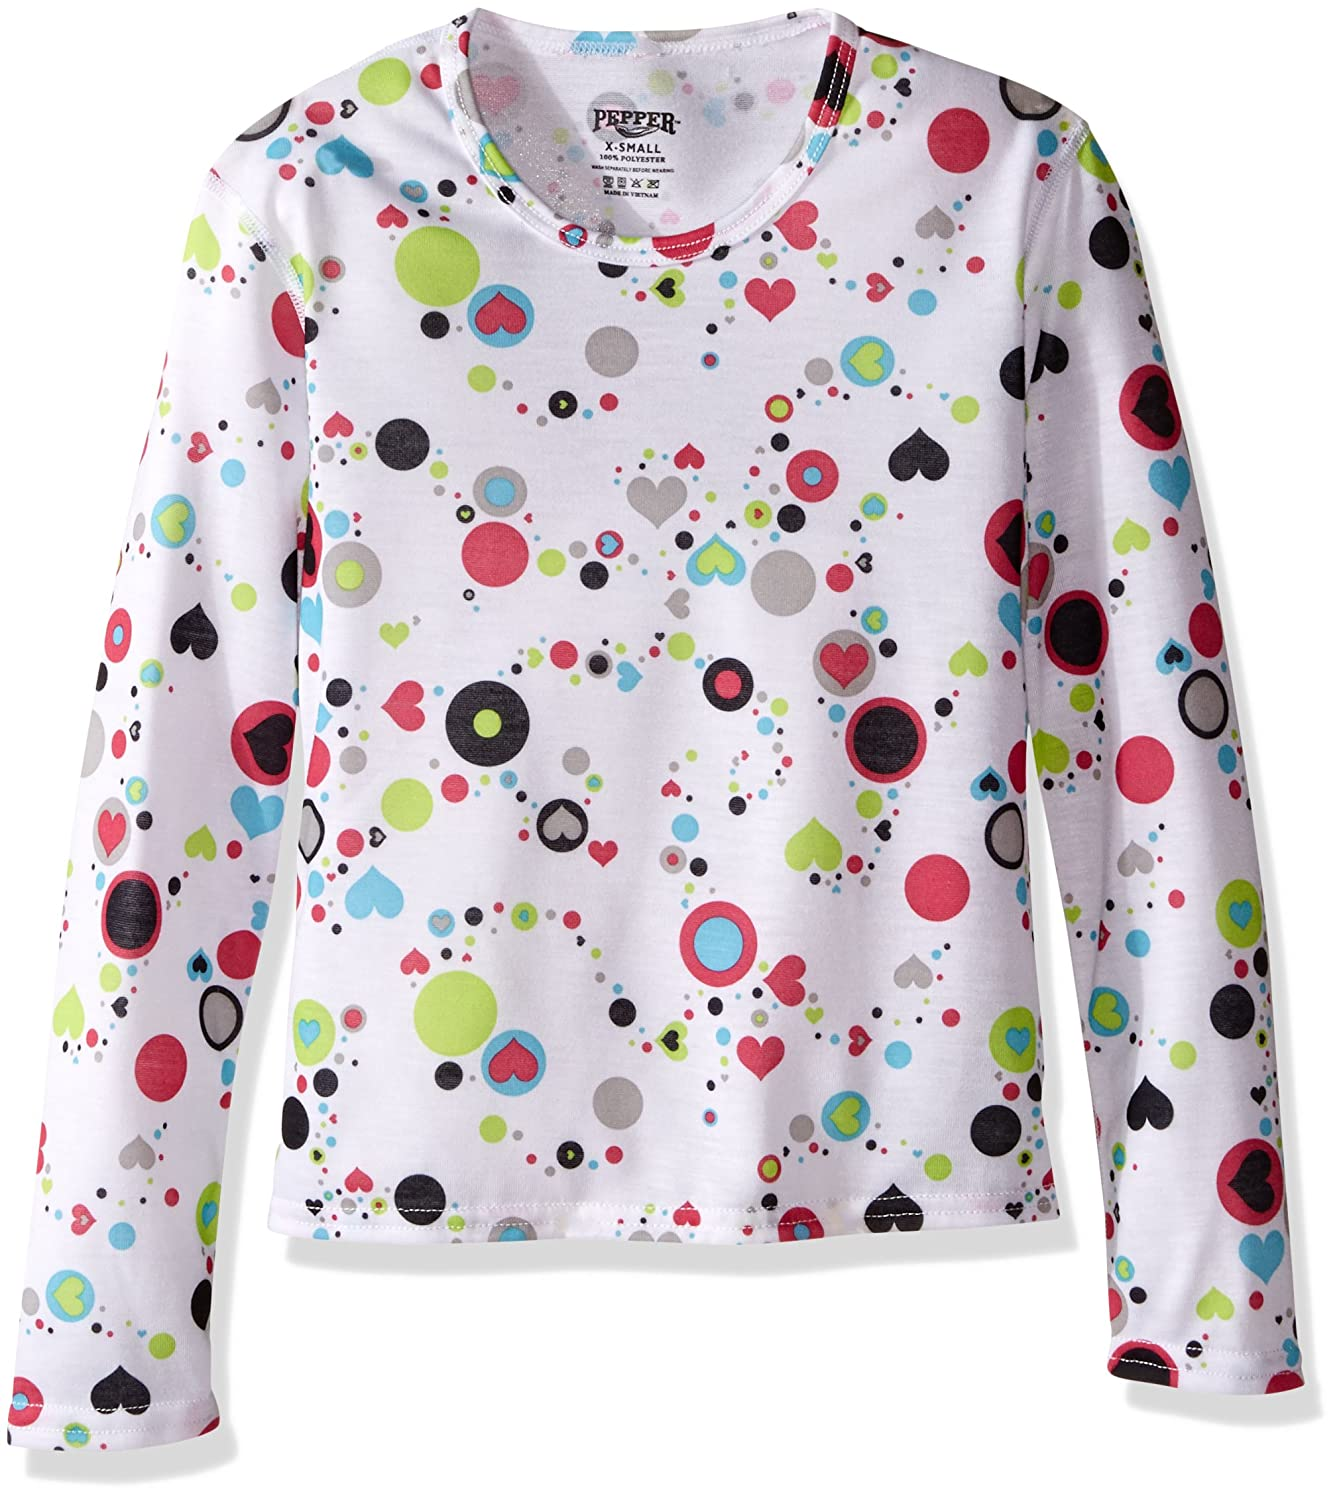 Dots /& Hearts-White X-Small Hot Chillys Youth Pepper Skins Print Crewneck